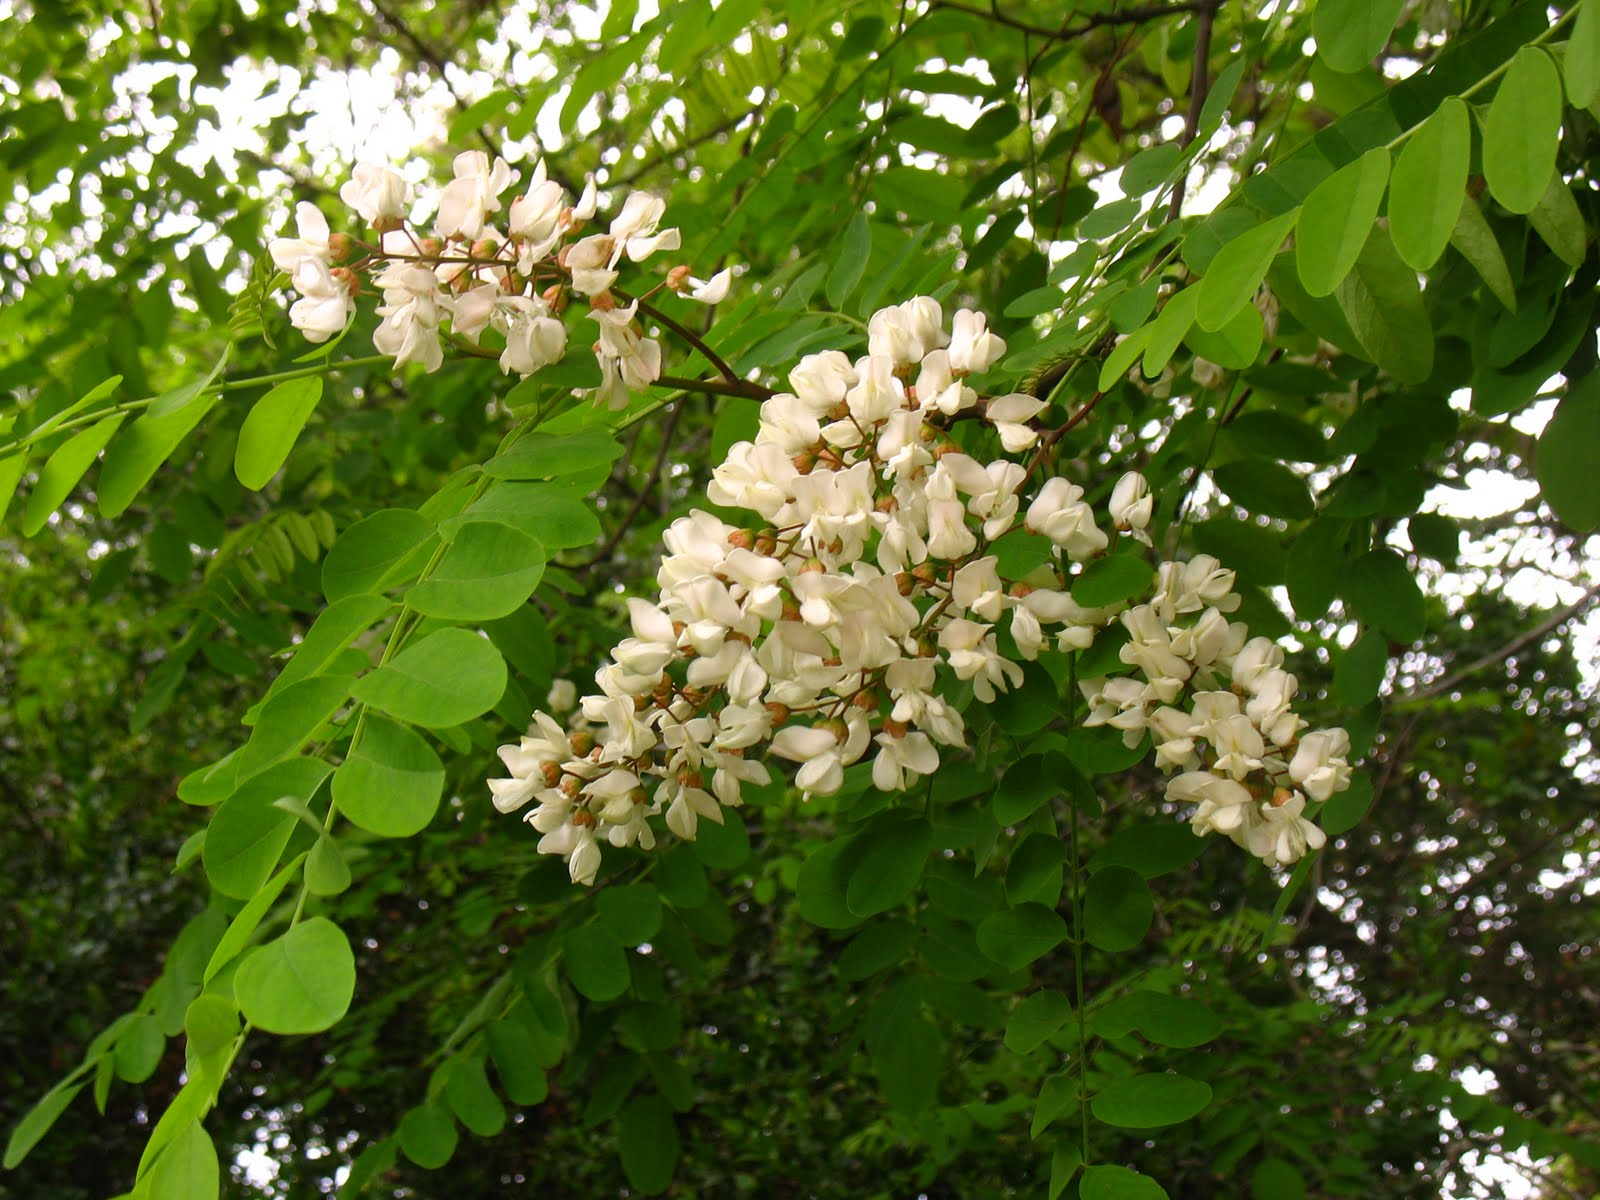 Tree Identification: Robinia pseudoacacia - Black Locust